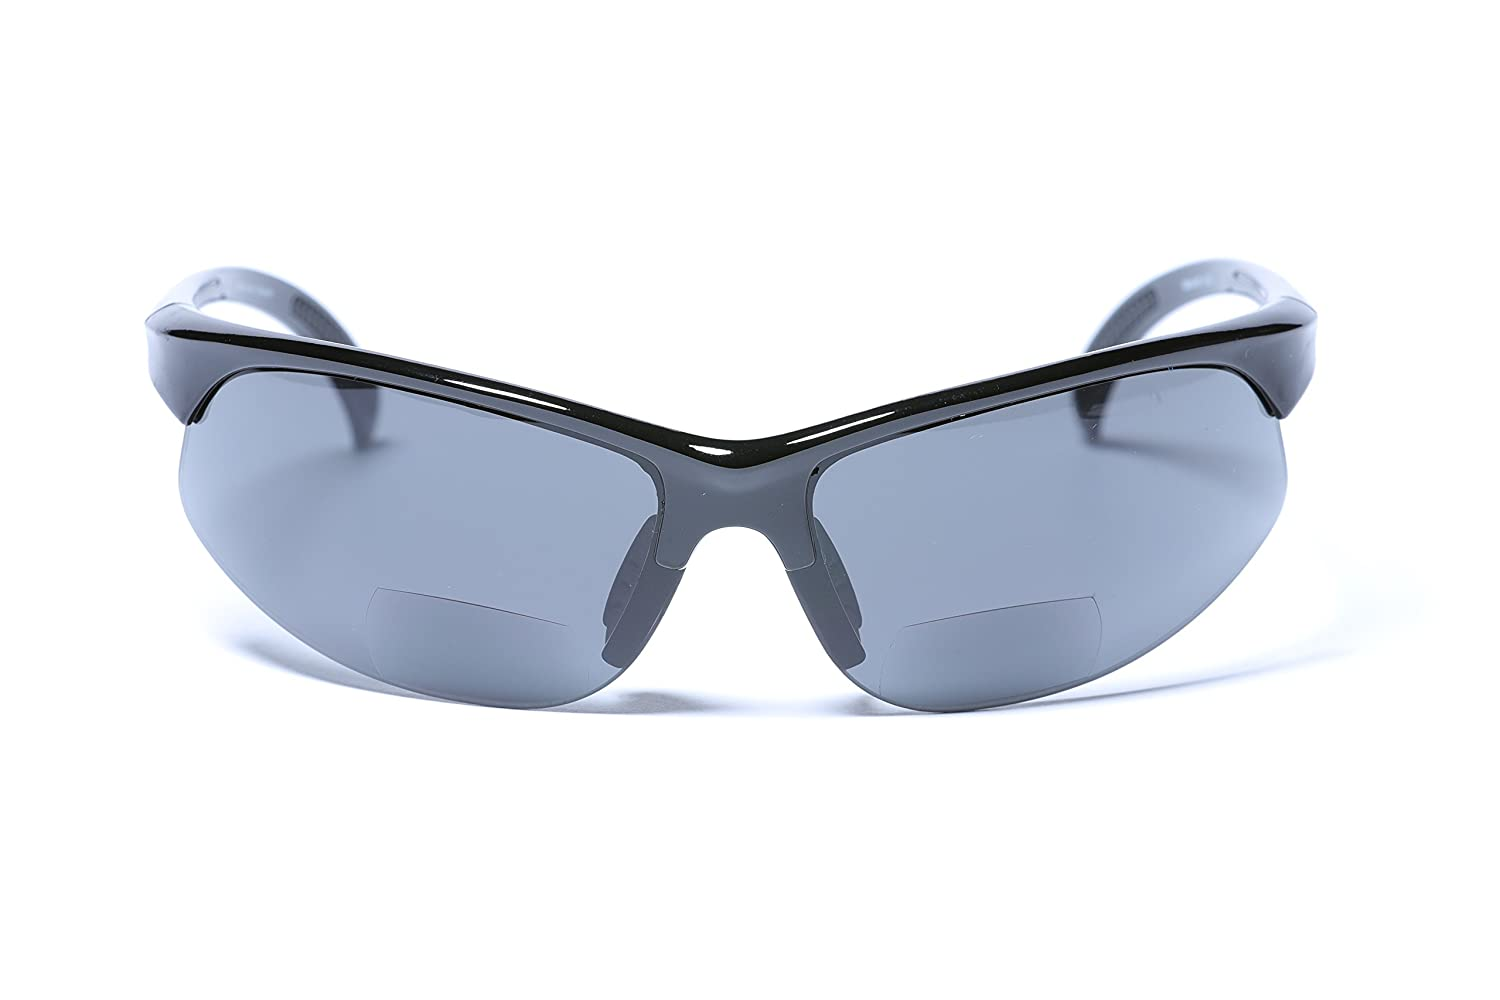 The Wind Breaker Sport Wrap Polarized Bifocal Sunglasses Outdoor Reading Glasses